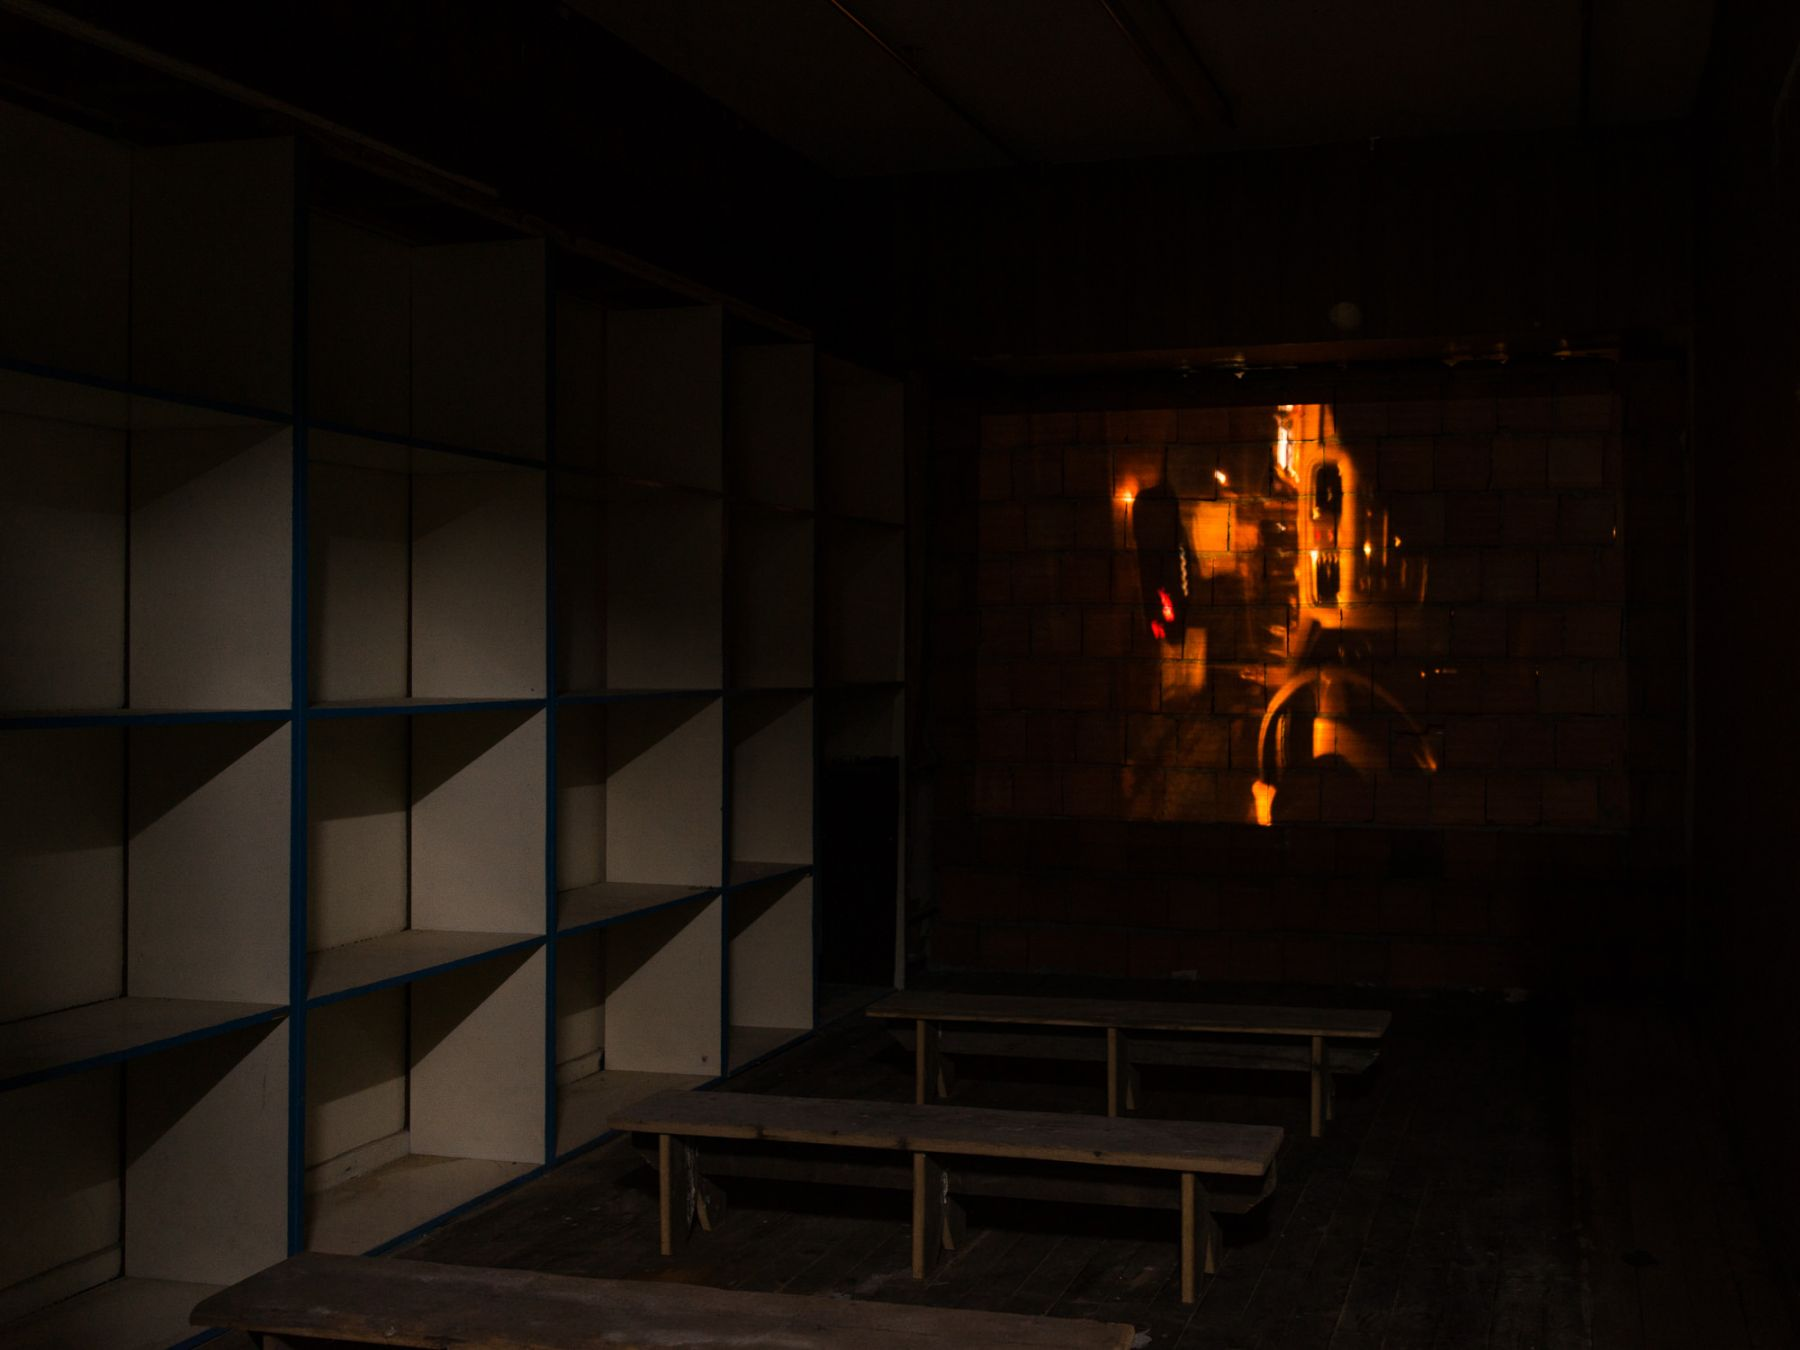 Mike Nelson, PROJEKTÖR (Gürün Han), 2019, commissioned and presented by Protocinema, Istanbul with support Henry Moore Foundation; Alserkal Arts Foundation; Galleria Franco Noero.